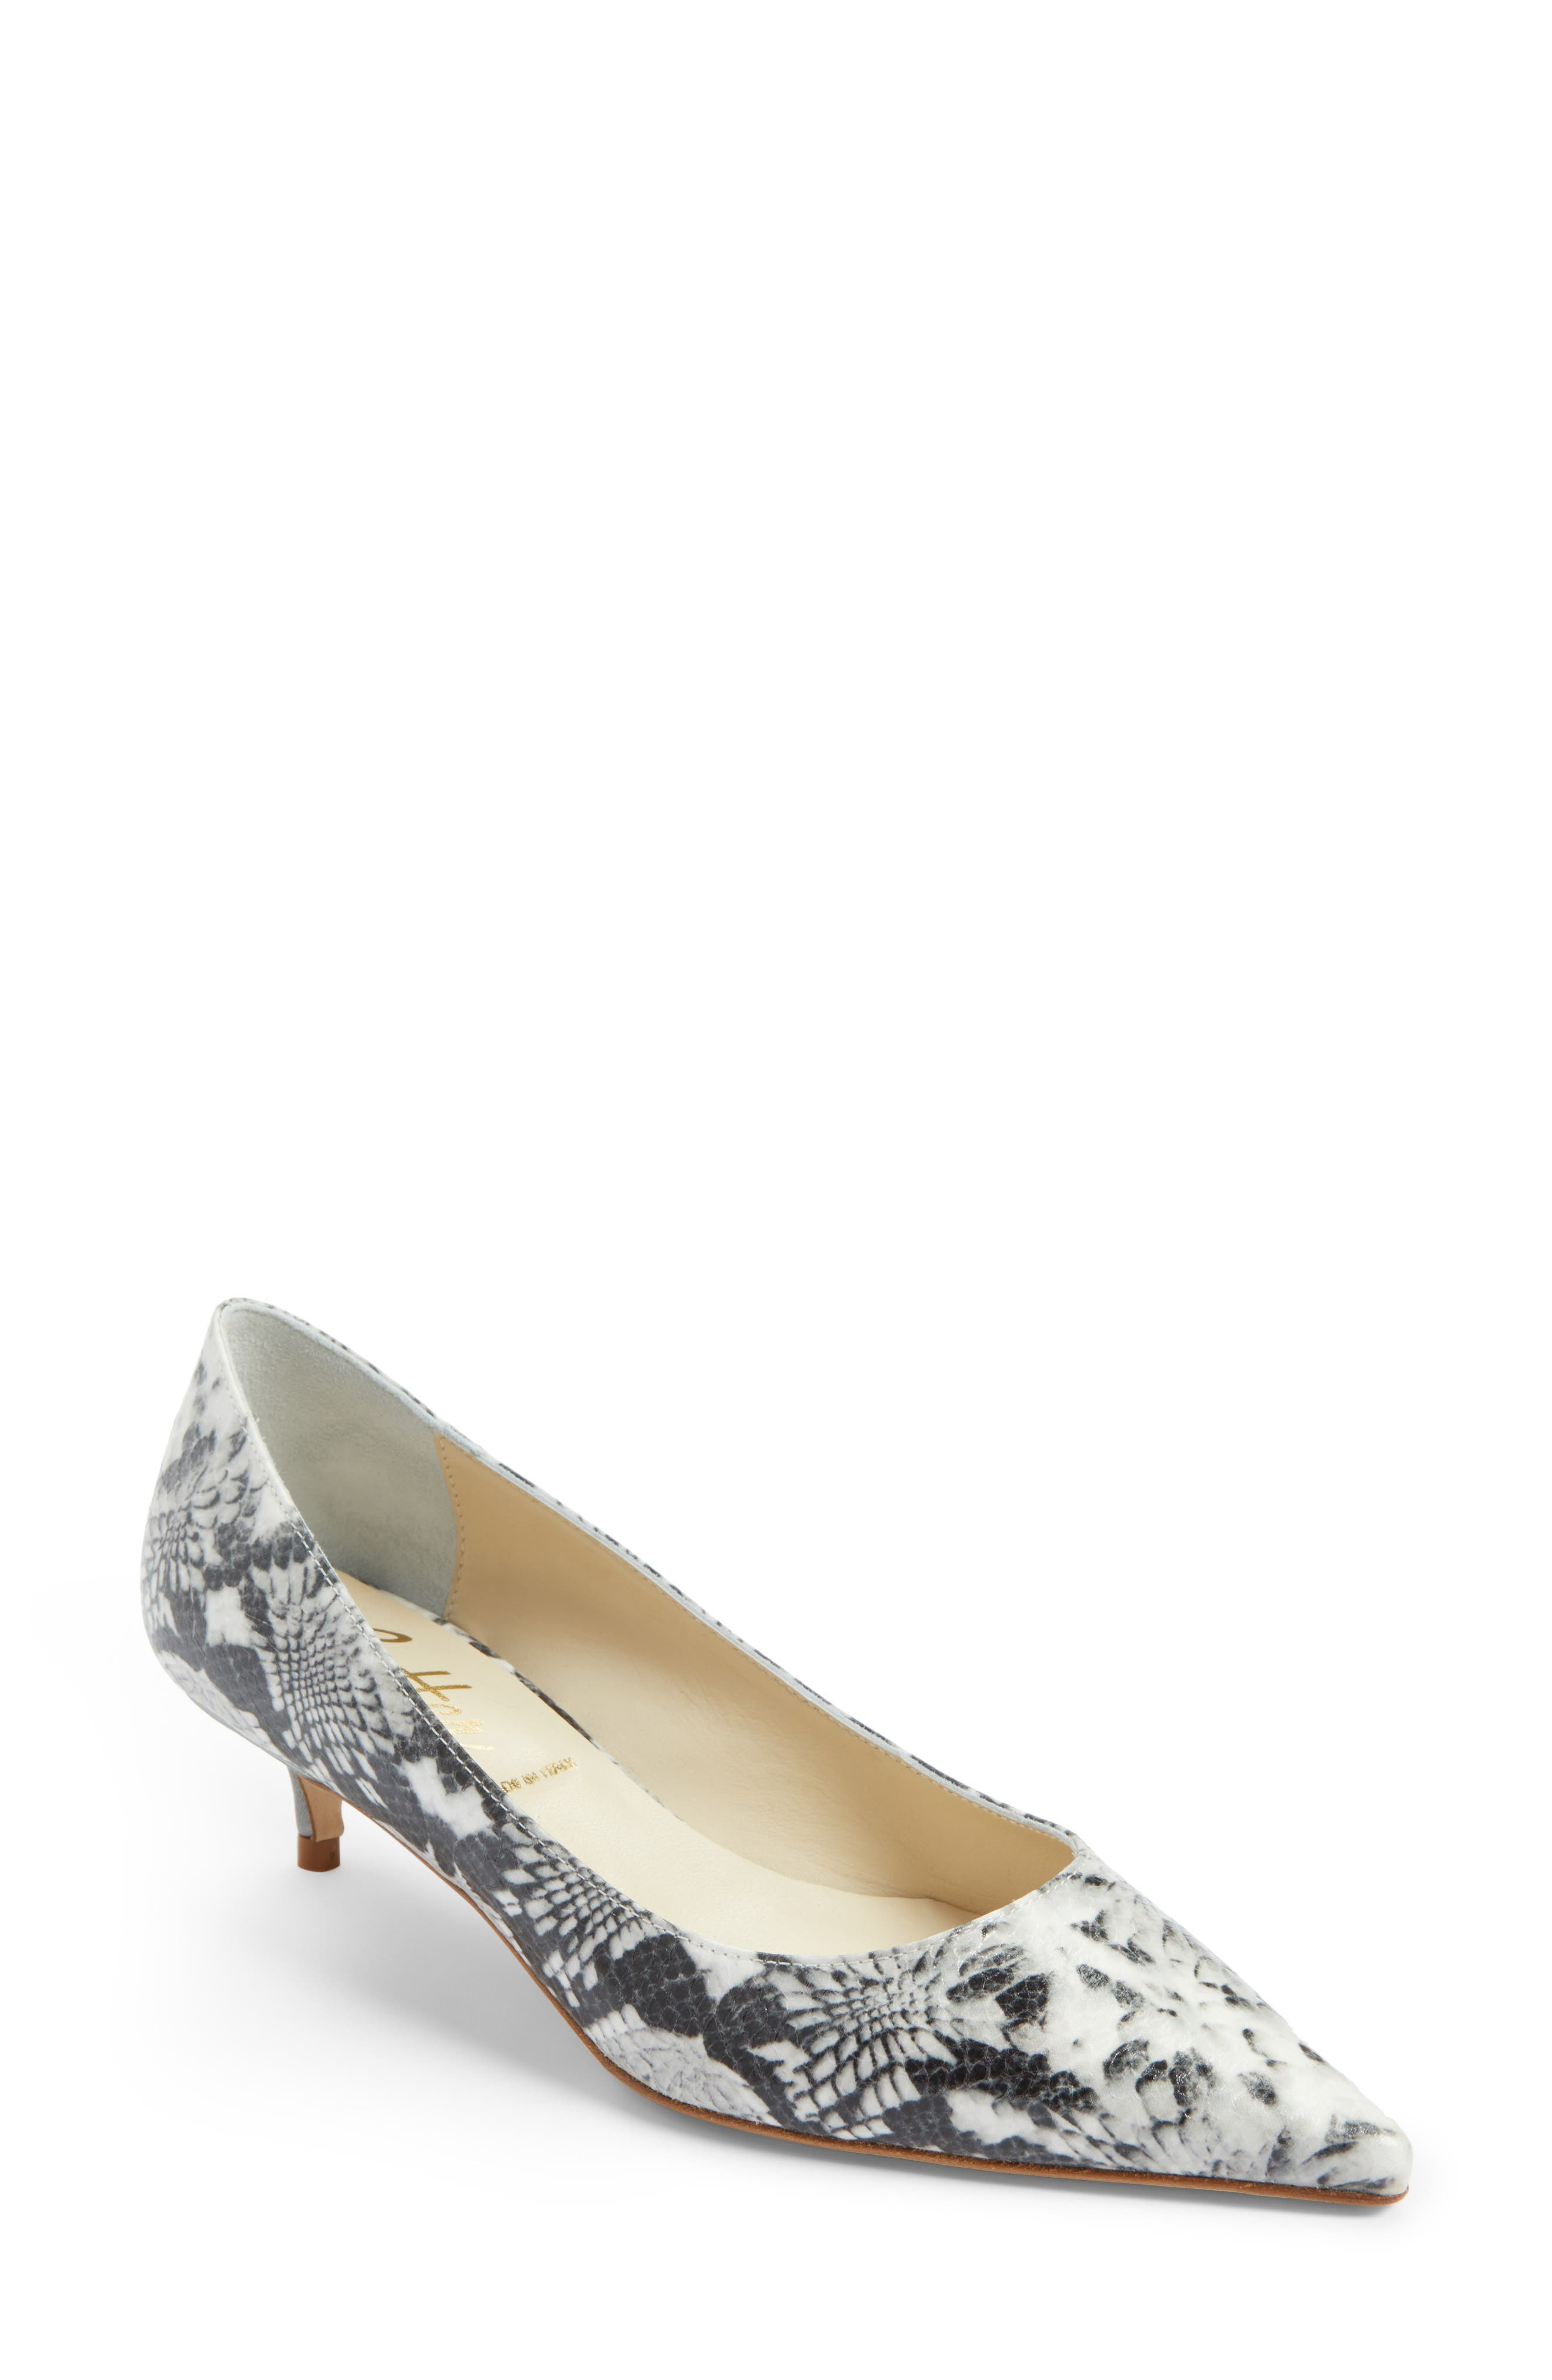 Butter Born Pointy Toe Pump,                             Main thumbnail 2, color,